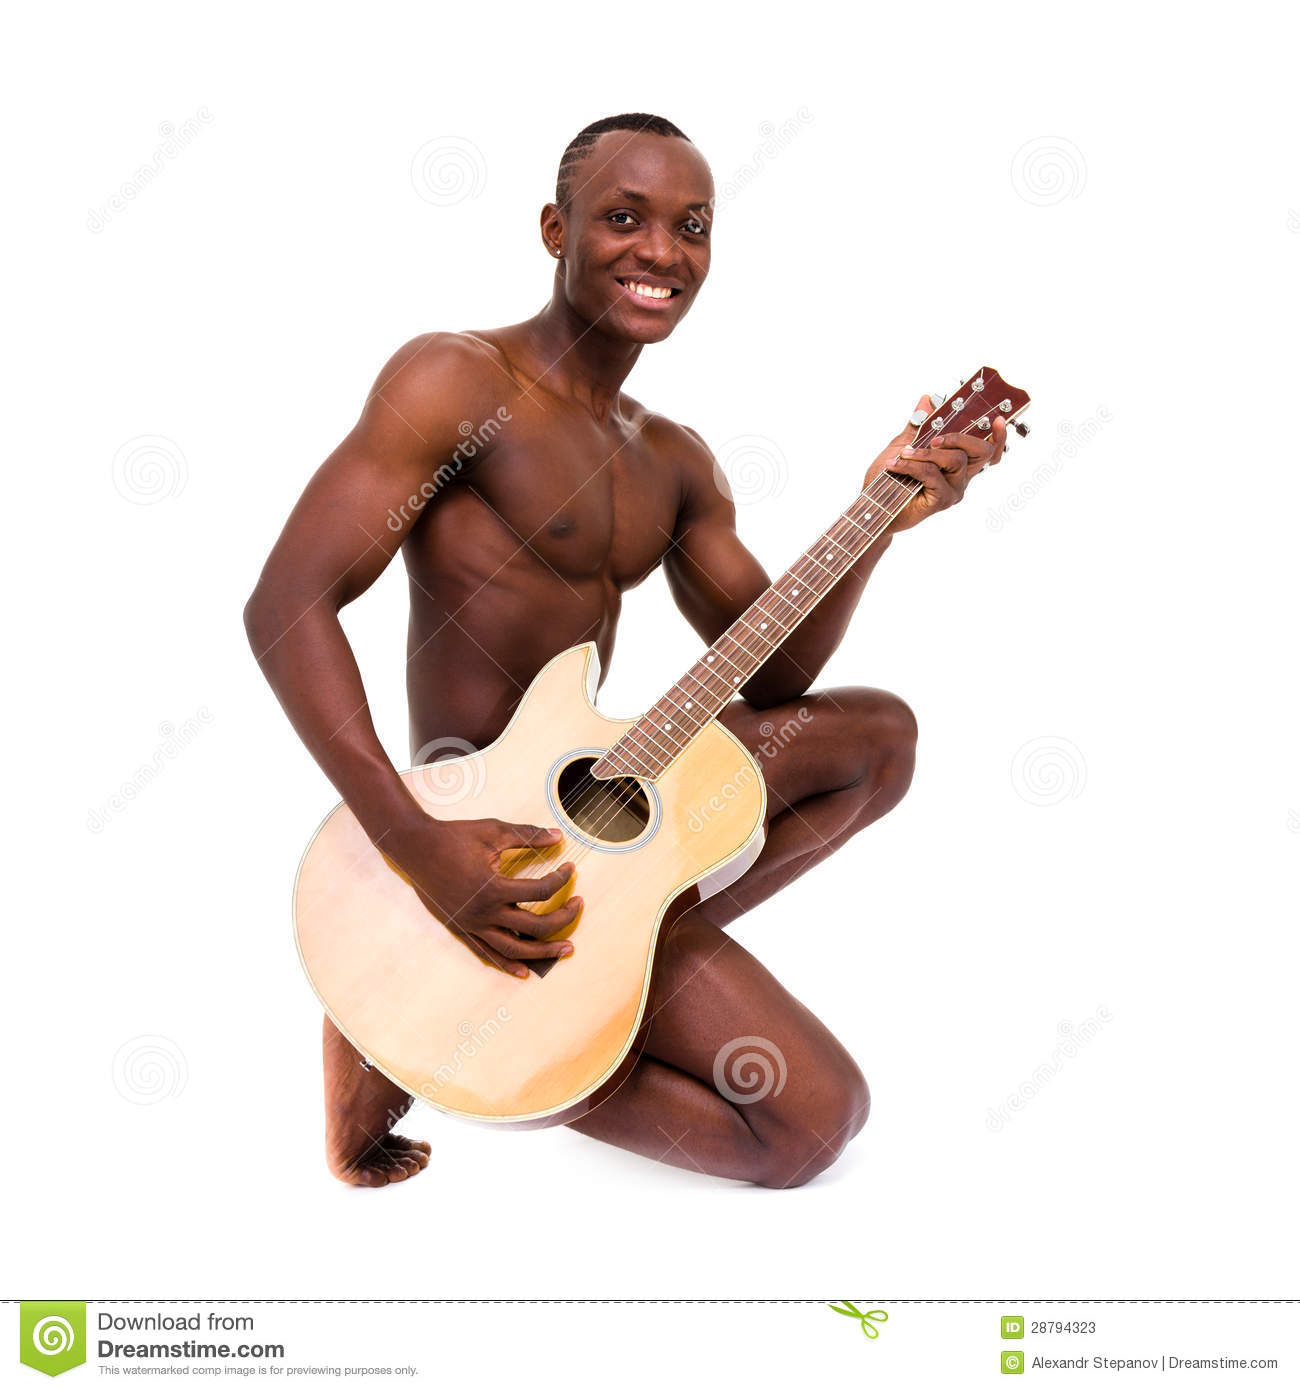 Acoustic guitar naked chick, yr old girls fucking scenes